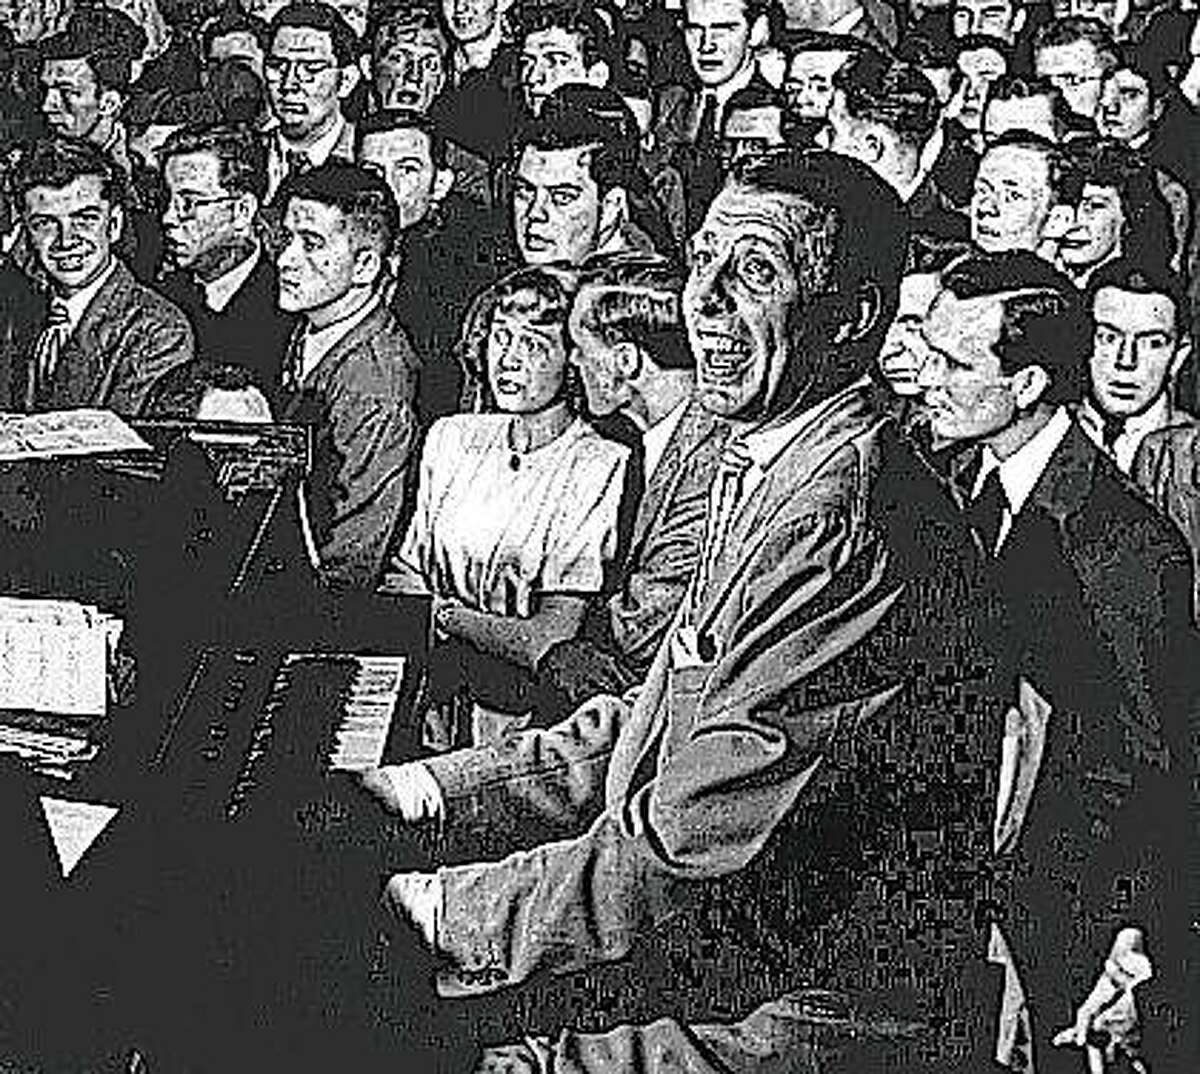 Big Band leader Stand Kenton performs in the mid 1940s.